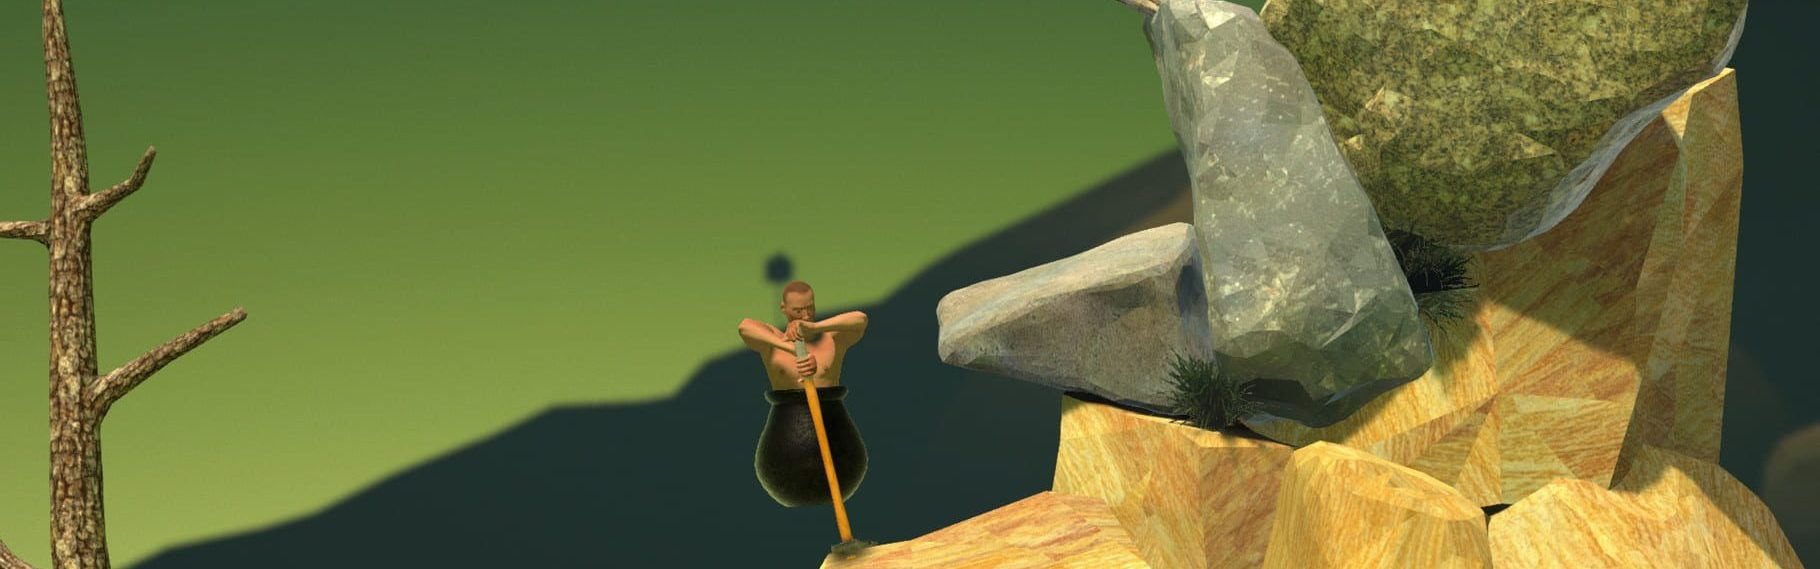 Getting Over It with Bennett Foddy Steam Key GLOBAL